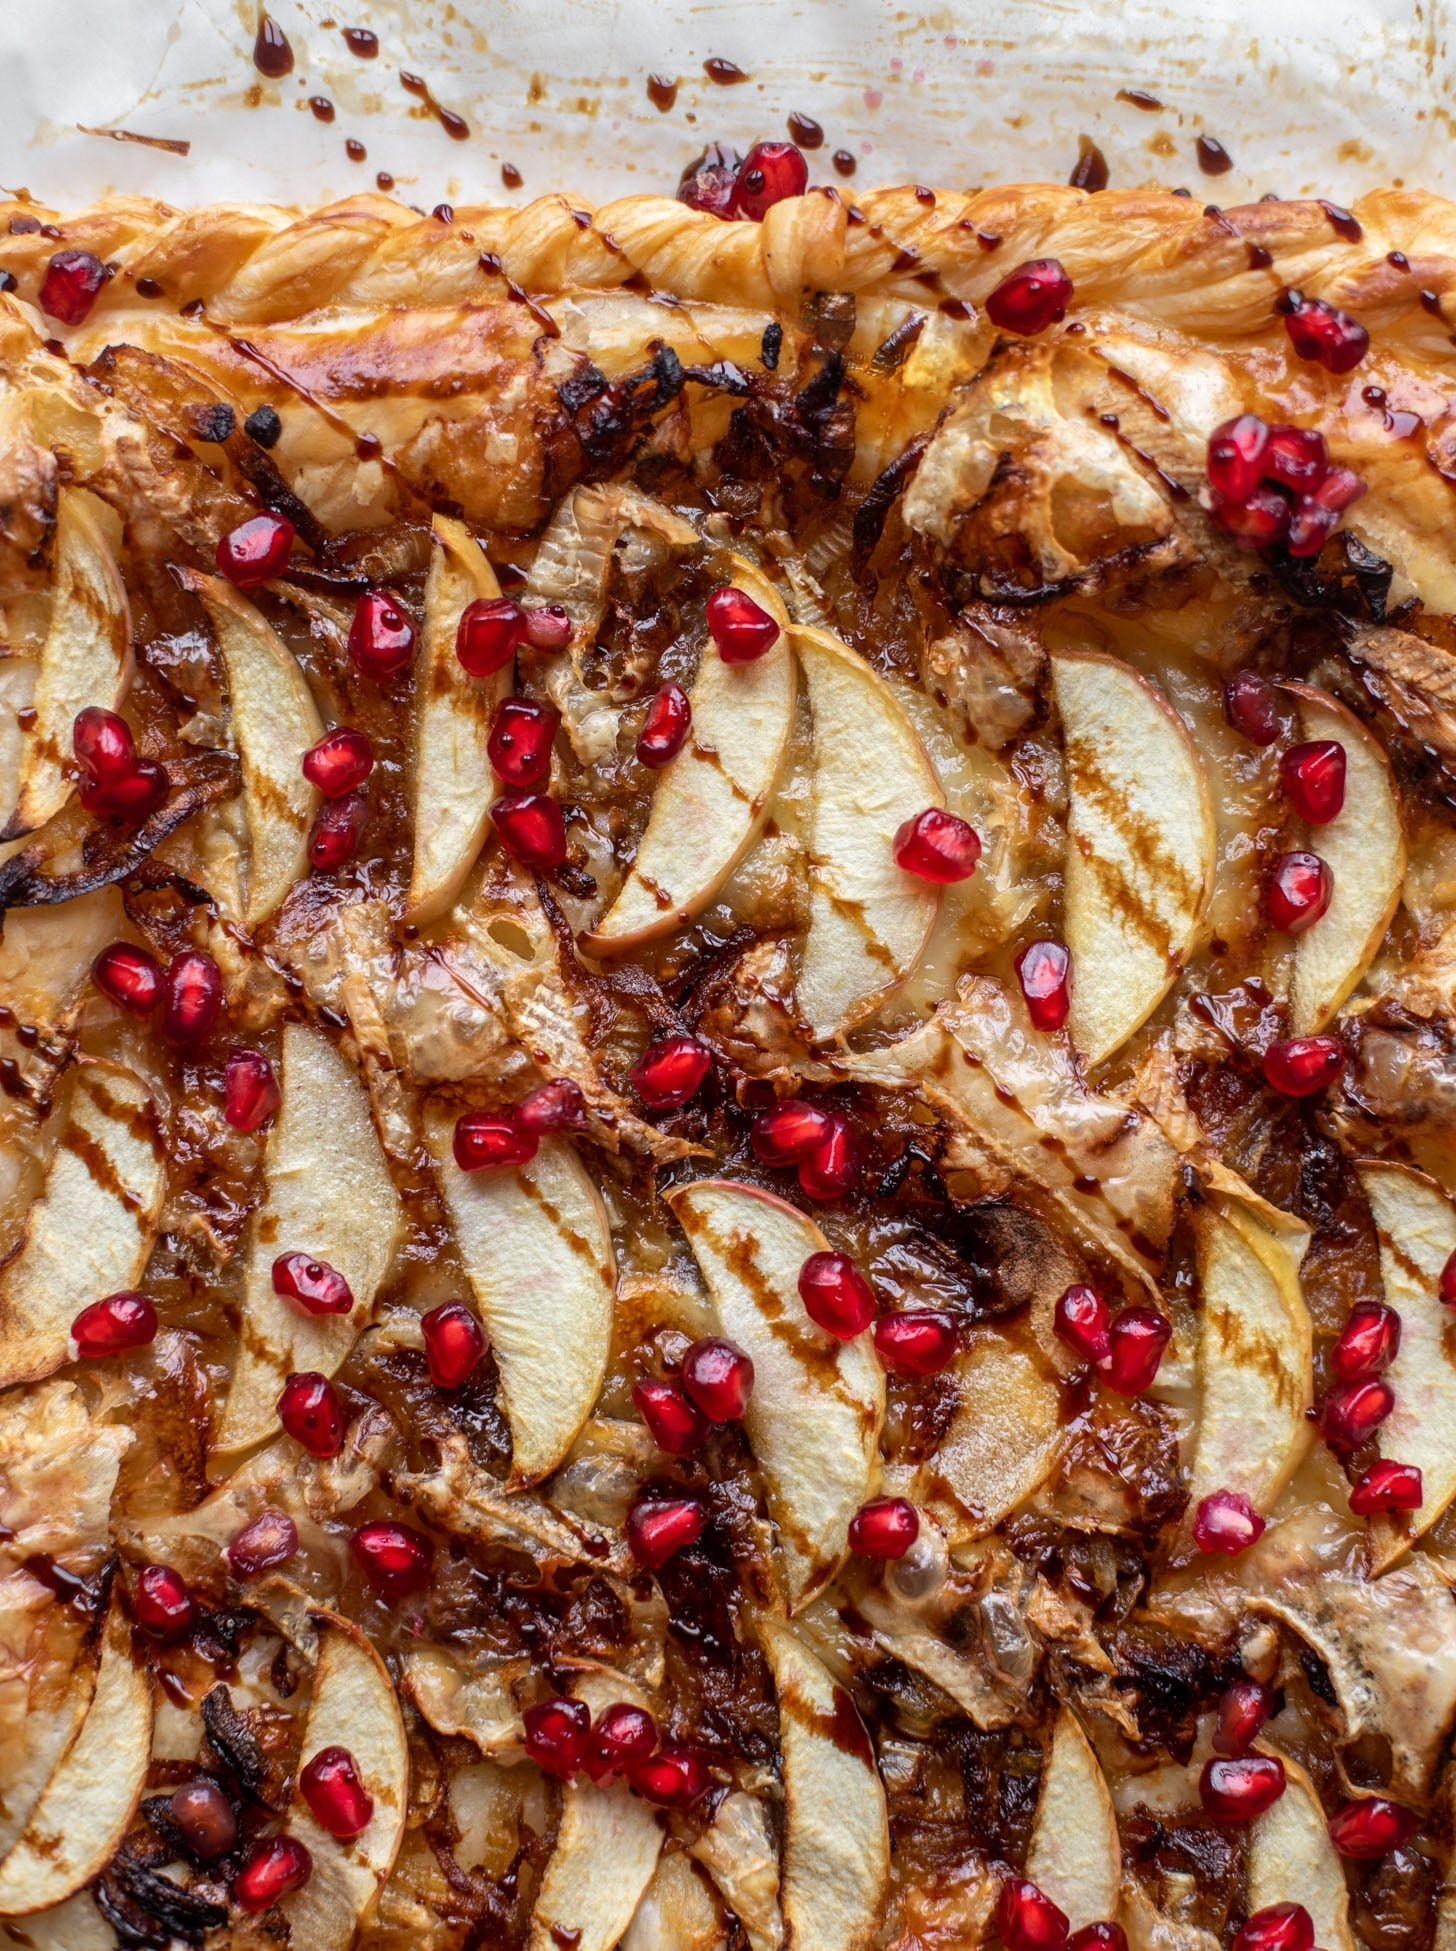 This apple brie tart starts with caramelized onions and puff pastry. It's topped with pomegranate molasses and juicy arils for an extra pop!